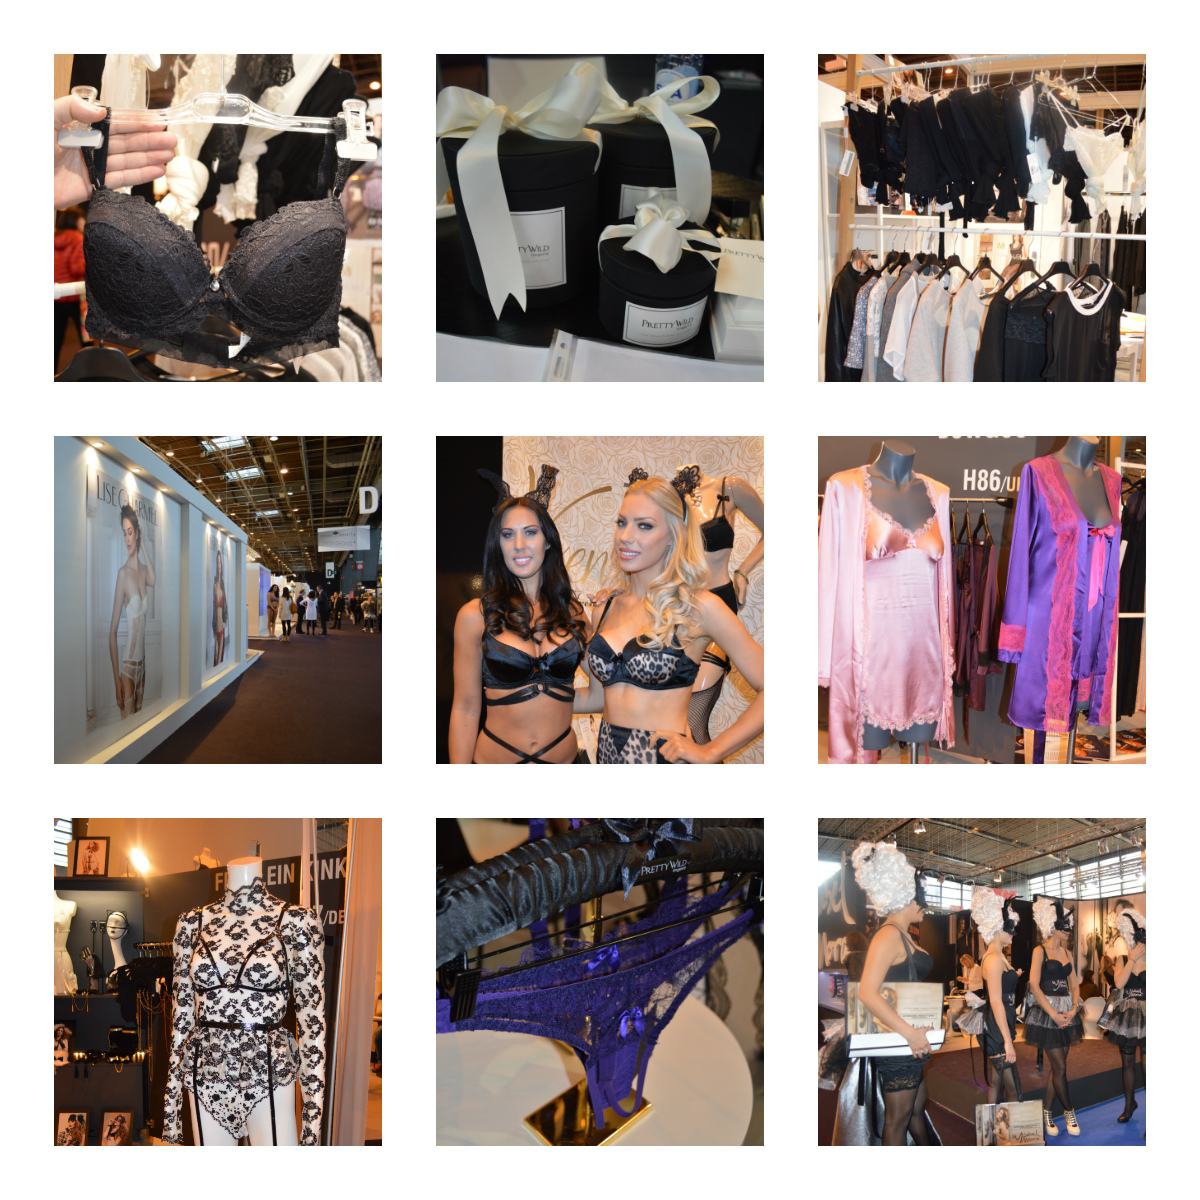 Die Messe- Salon International de la lingerie- 2015